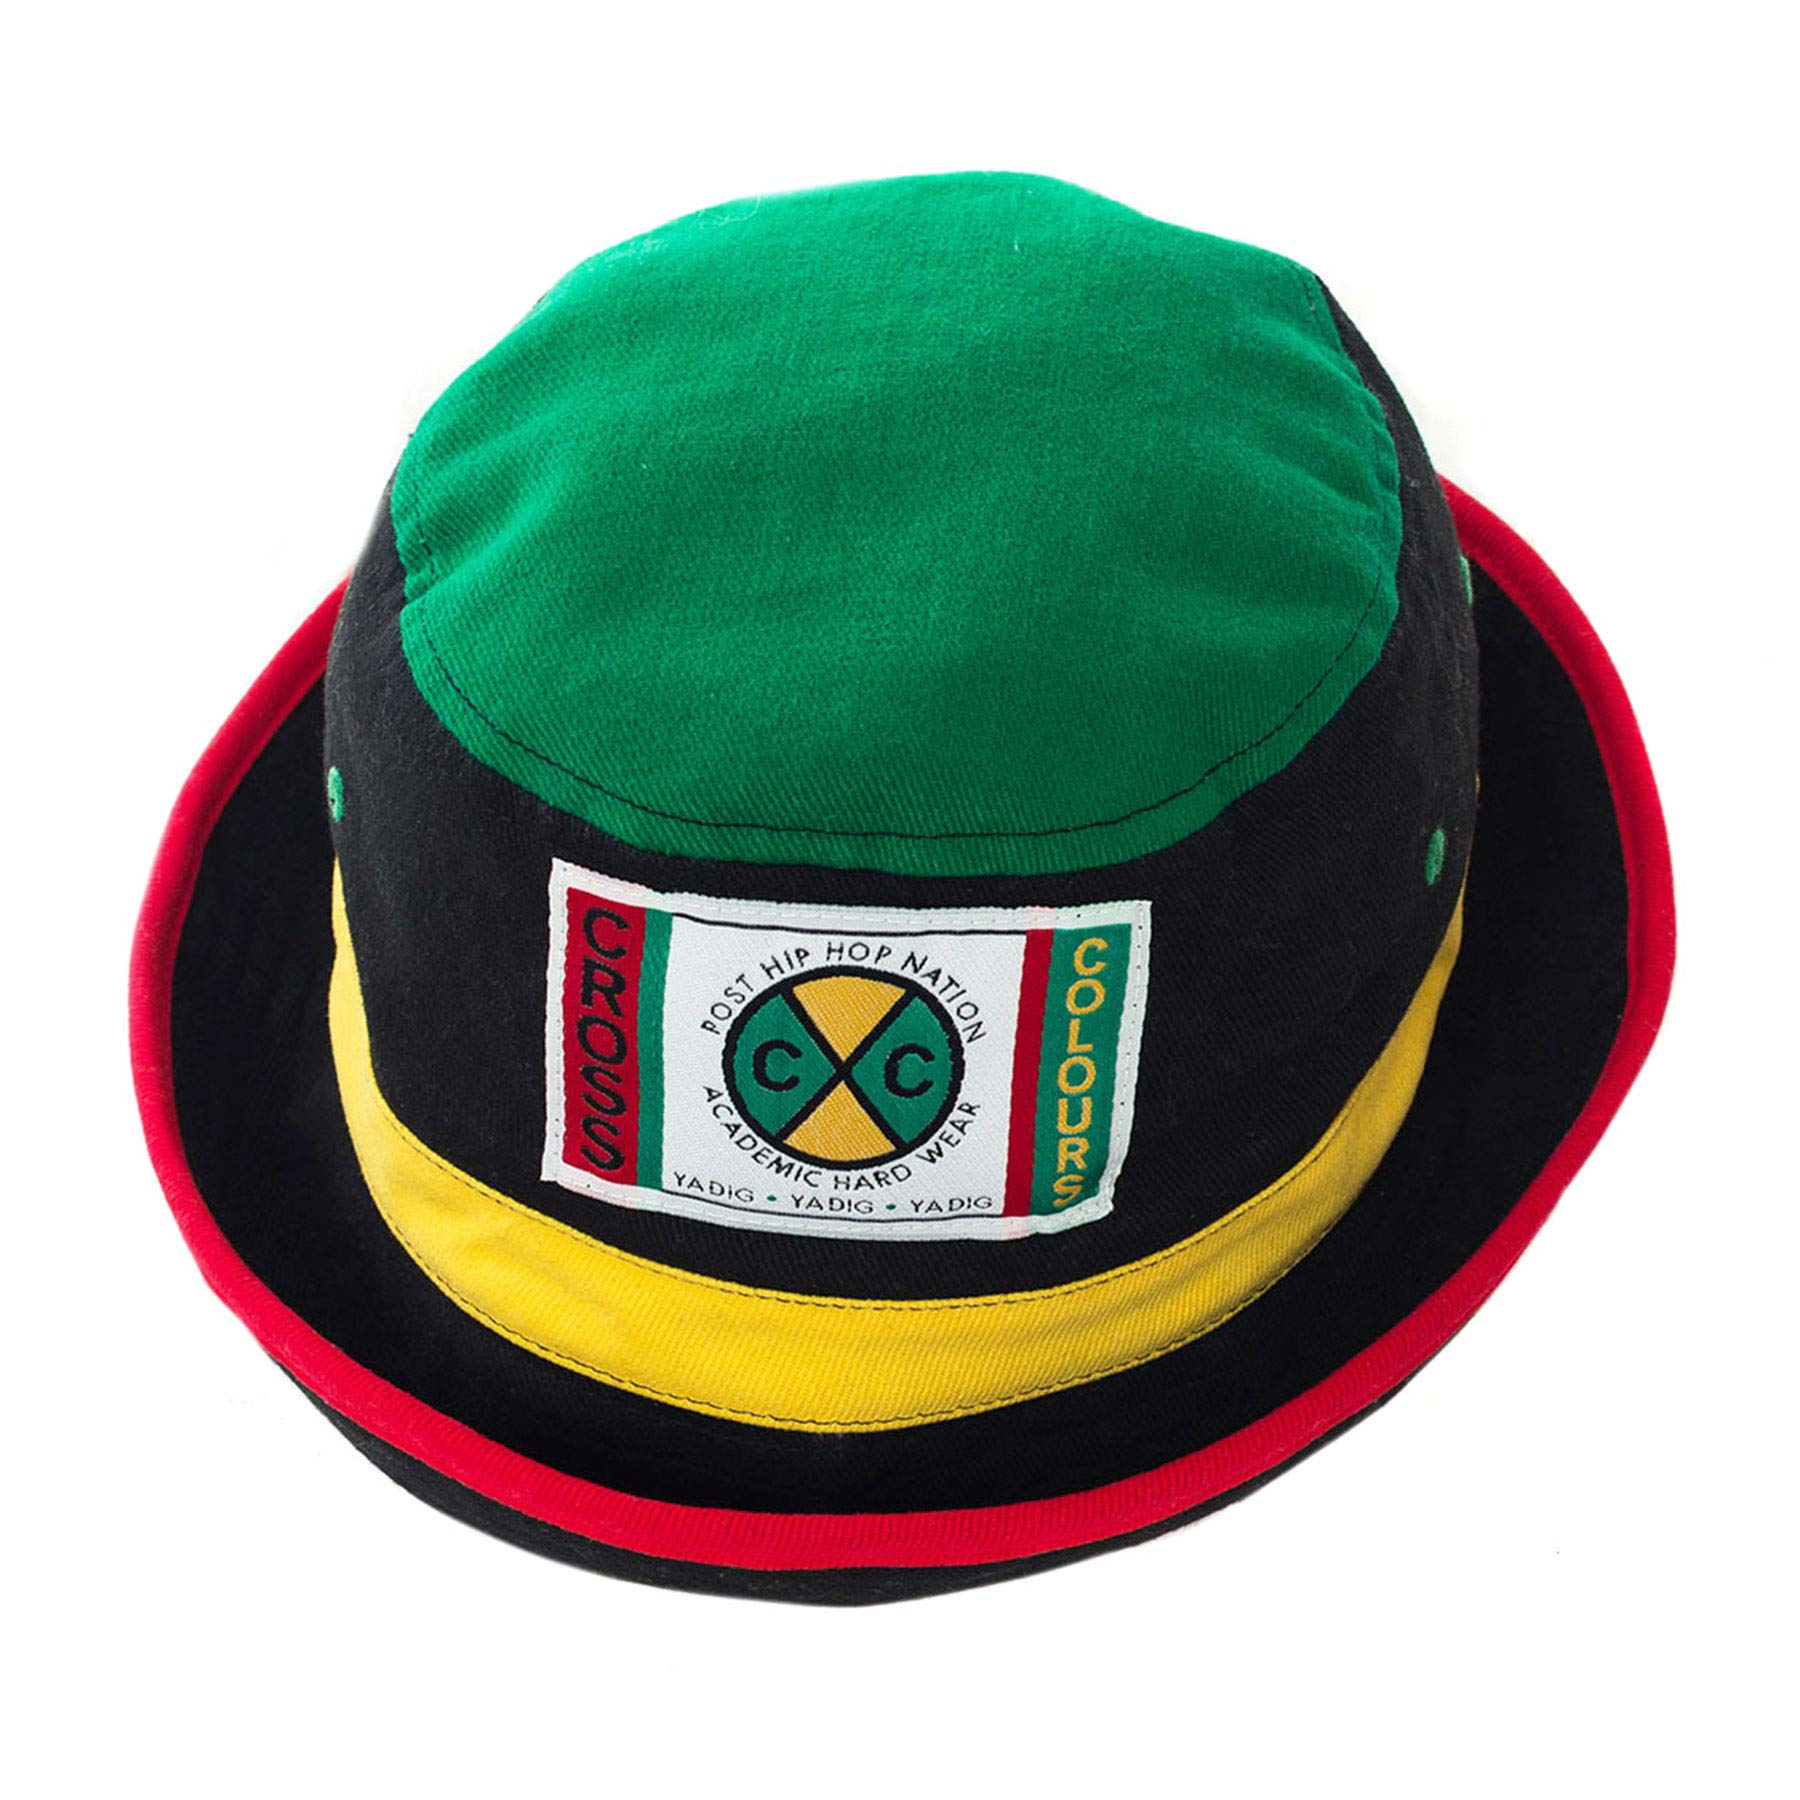 CROSS COLOURS Color Block Bucket Hat (One Size, Multi)